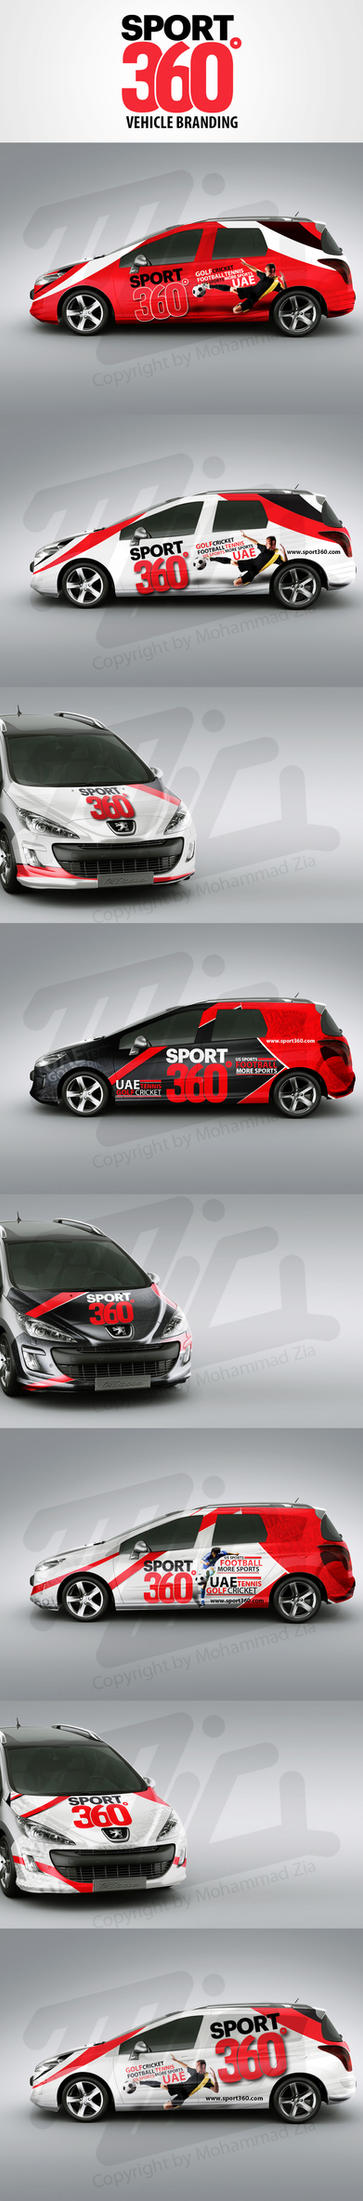 Vehicular Branding by captainrajor